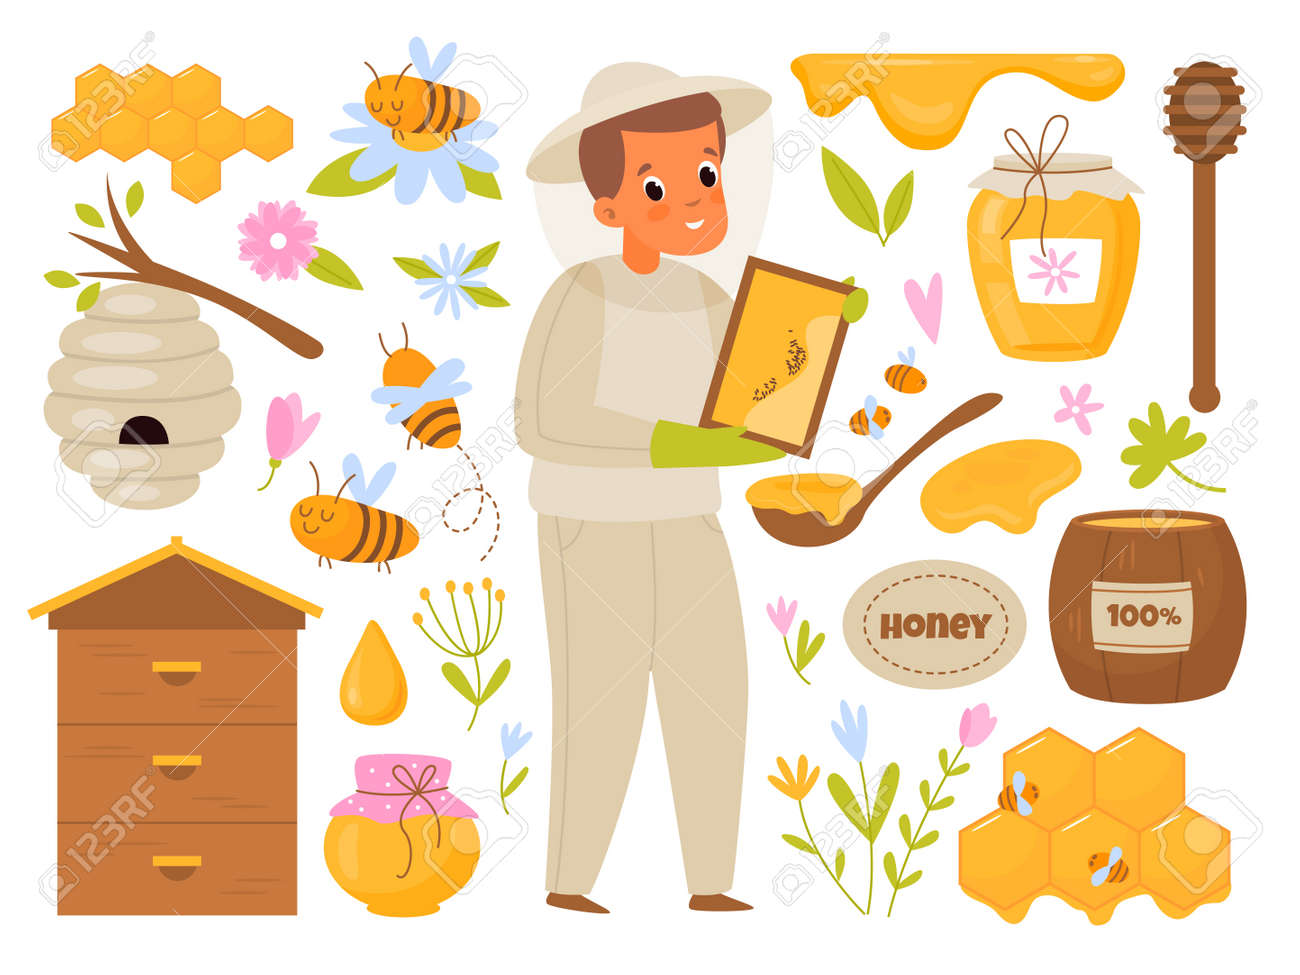 Apiary honey. Cartoon beekeeper. Man takes care of bees producing organic sweets in hive. Barrel and glass can for natural products. Honeycombs and flowers. Vector beekeeping elements set - 171599893